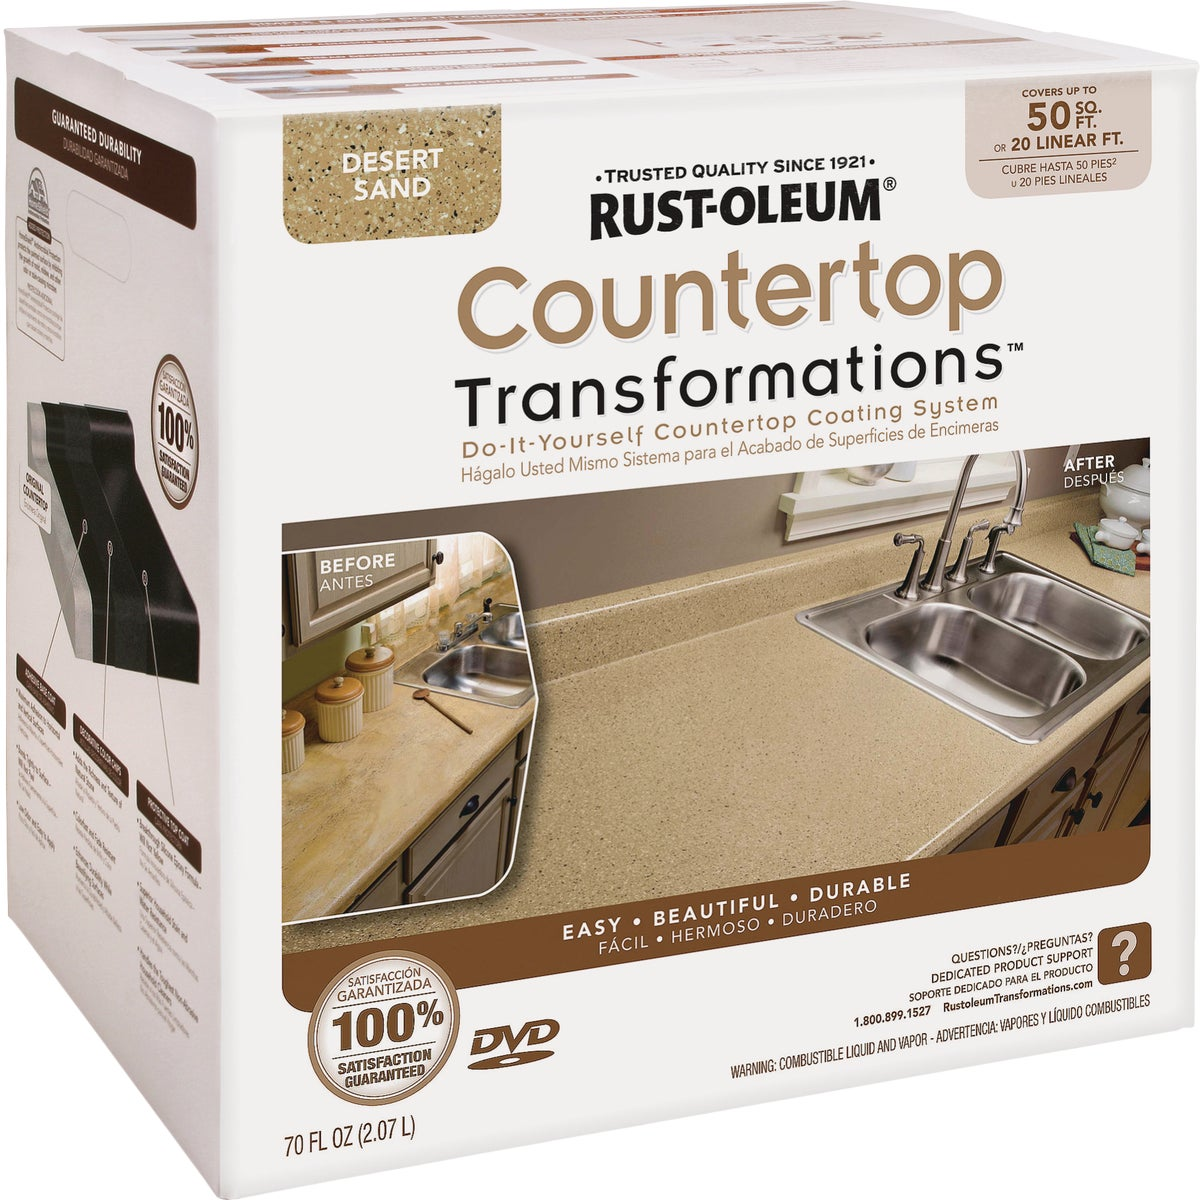 DESRTSAND COUNTERTOP KIT - 258286 by Rustoleum